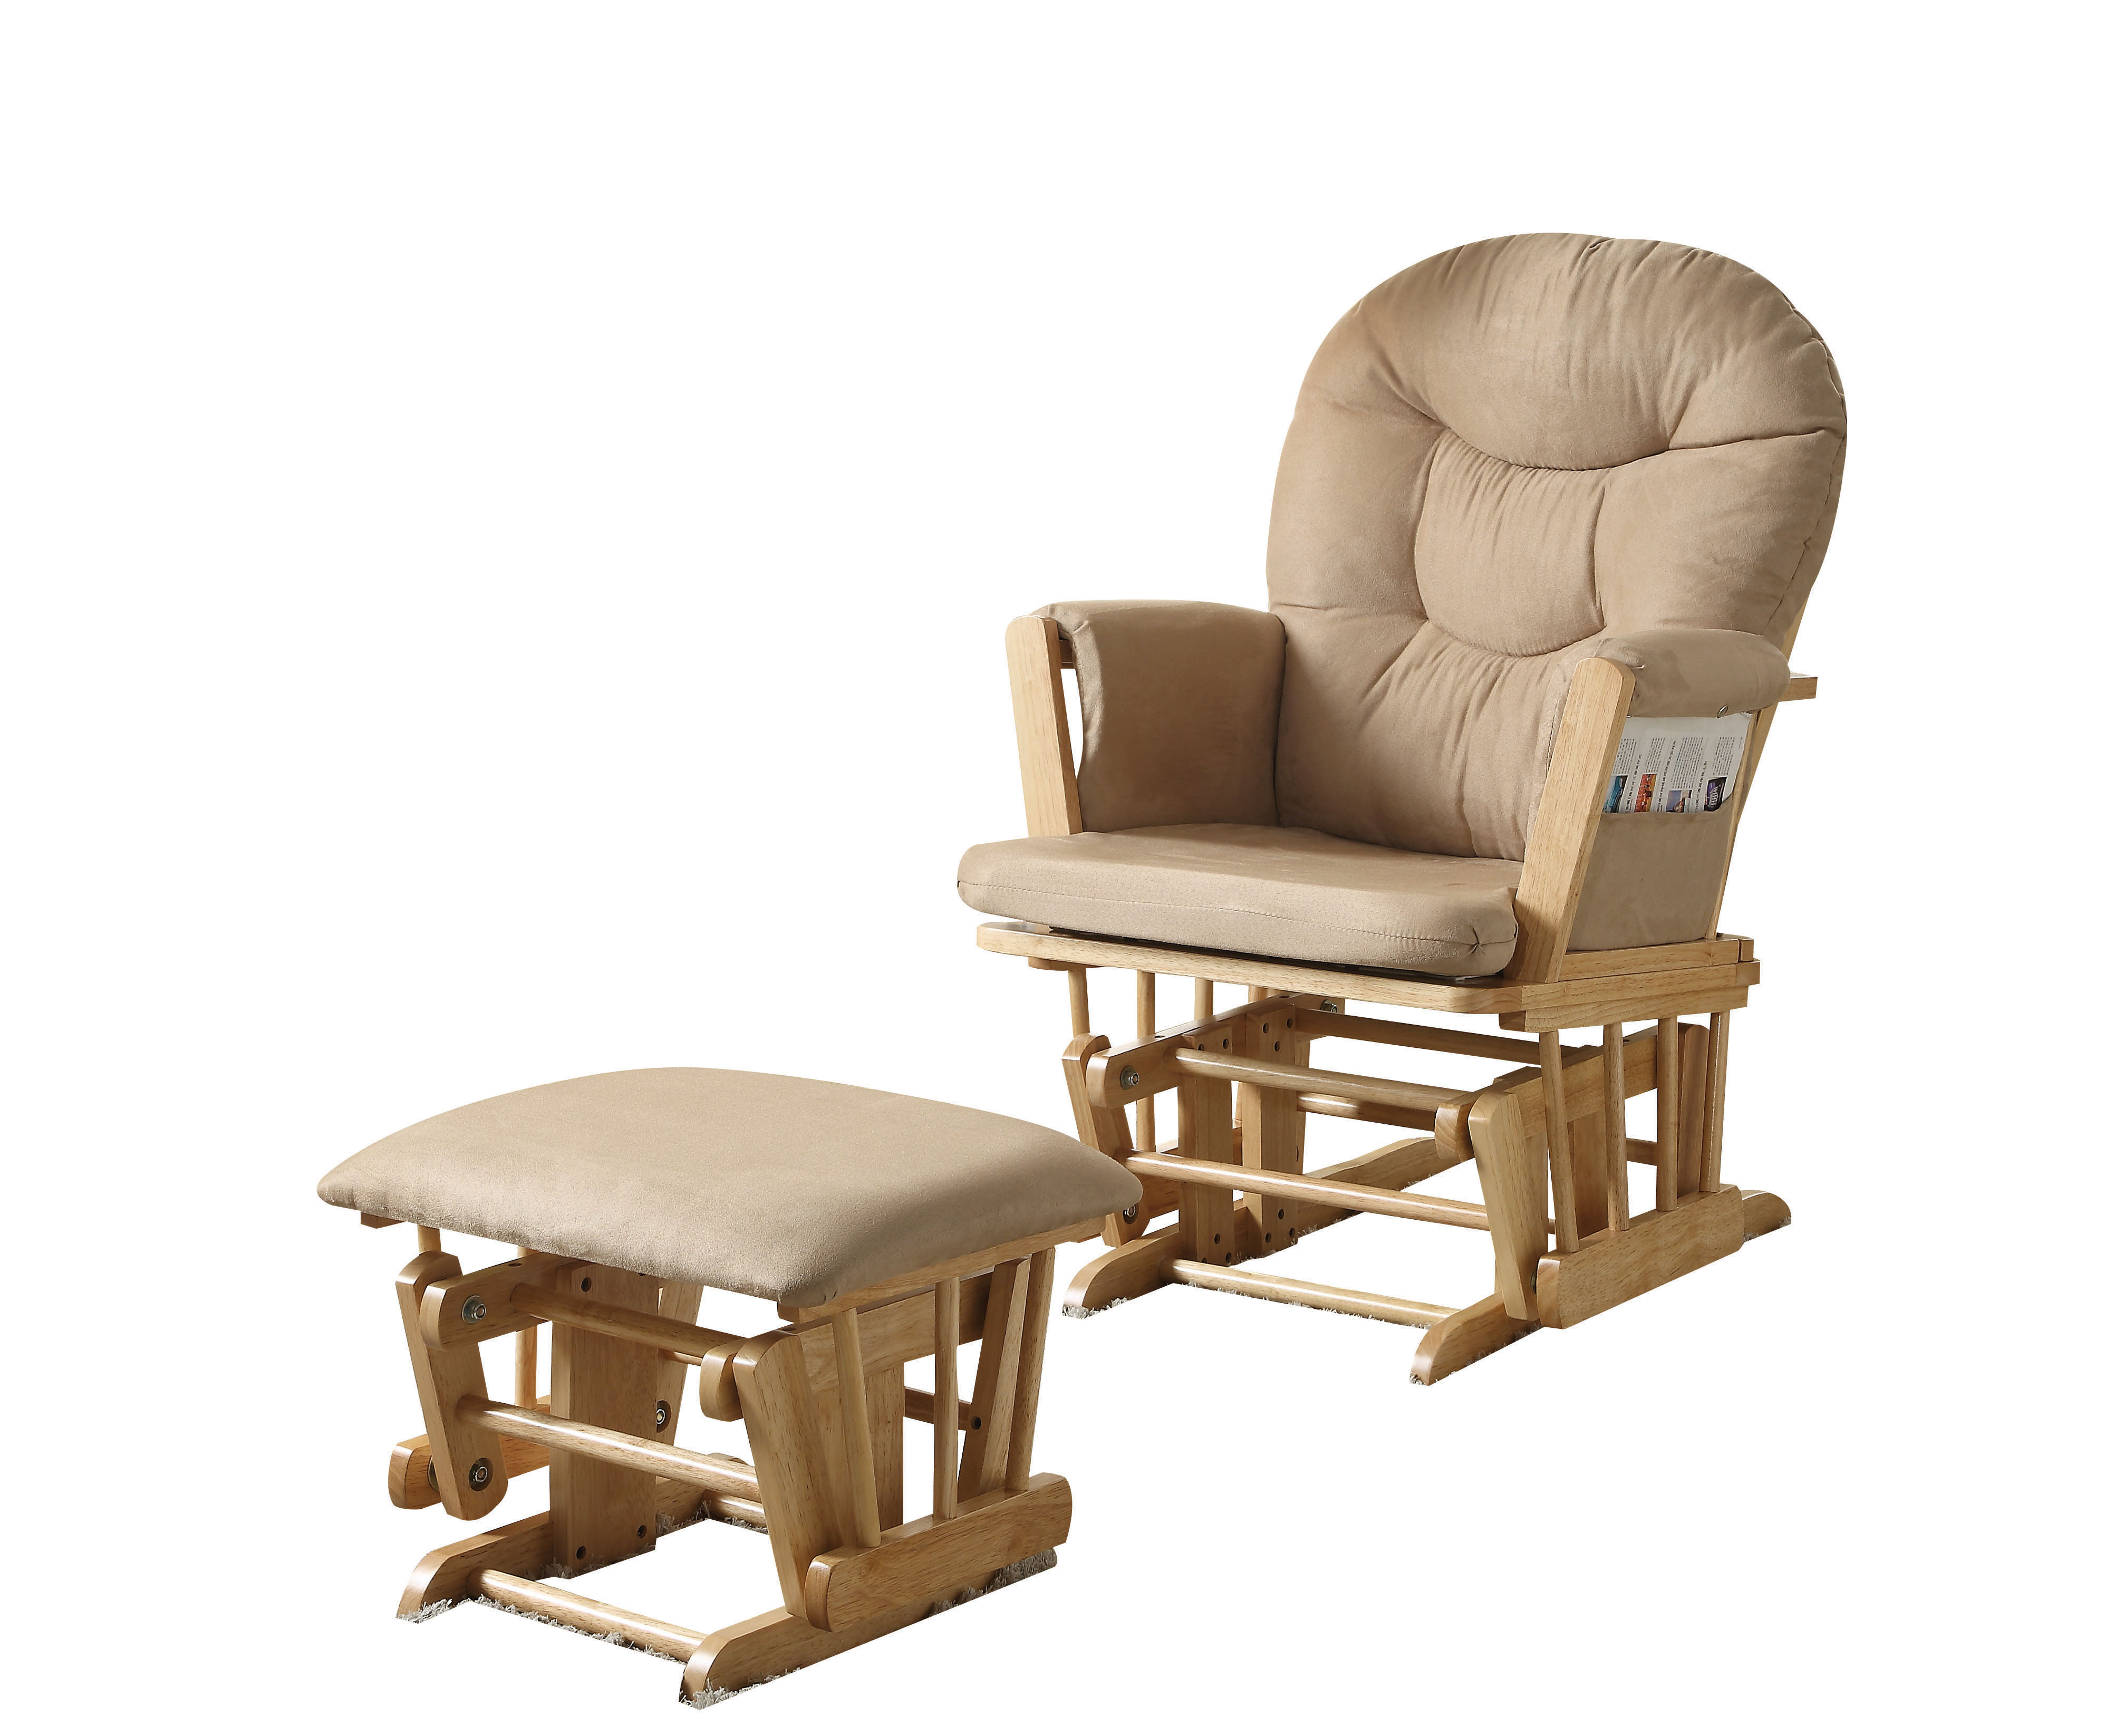 ACME Rehan 2-Piece Pack Glider Chair & Ottoman, Taupe Microfiber & Natural Oak by ACME Furniture